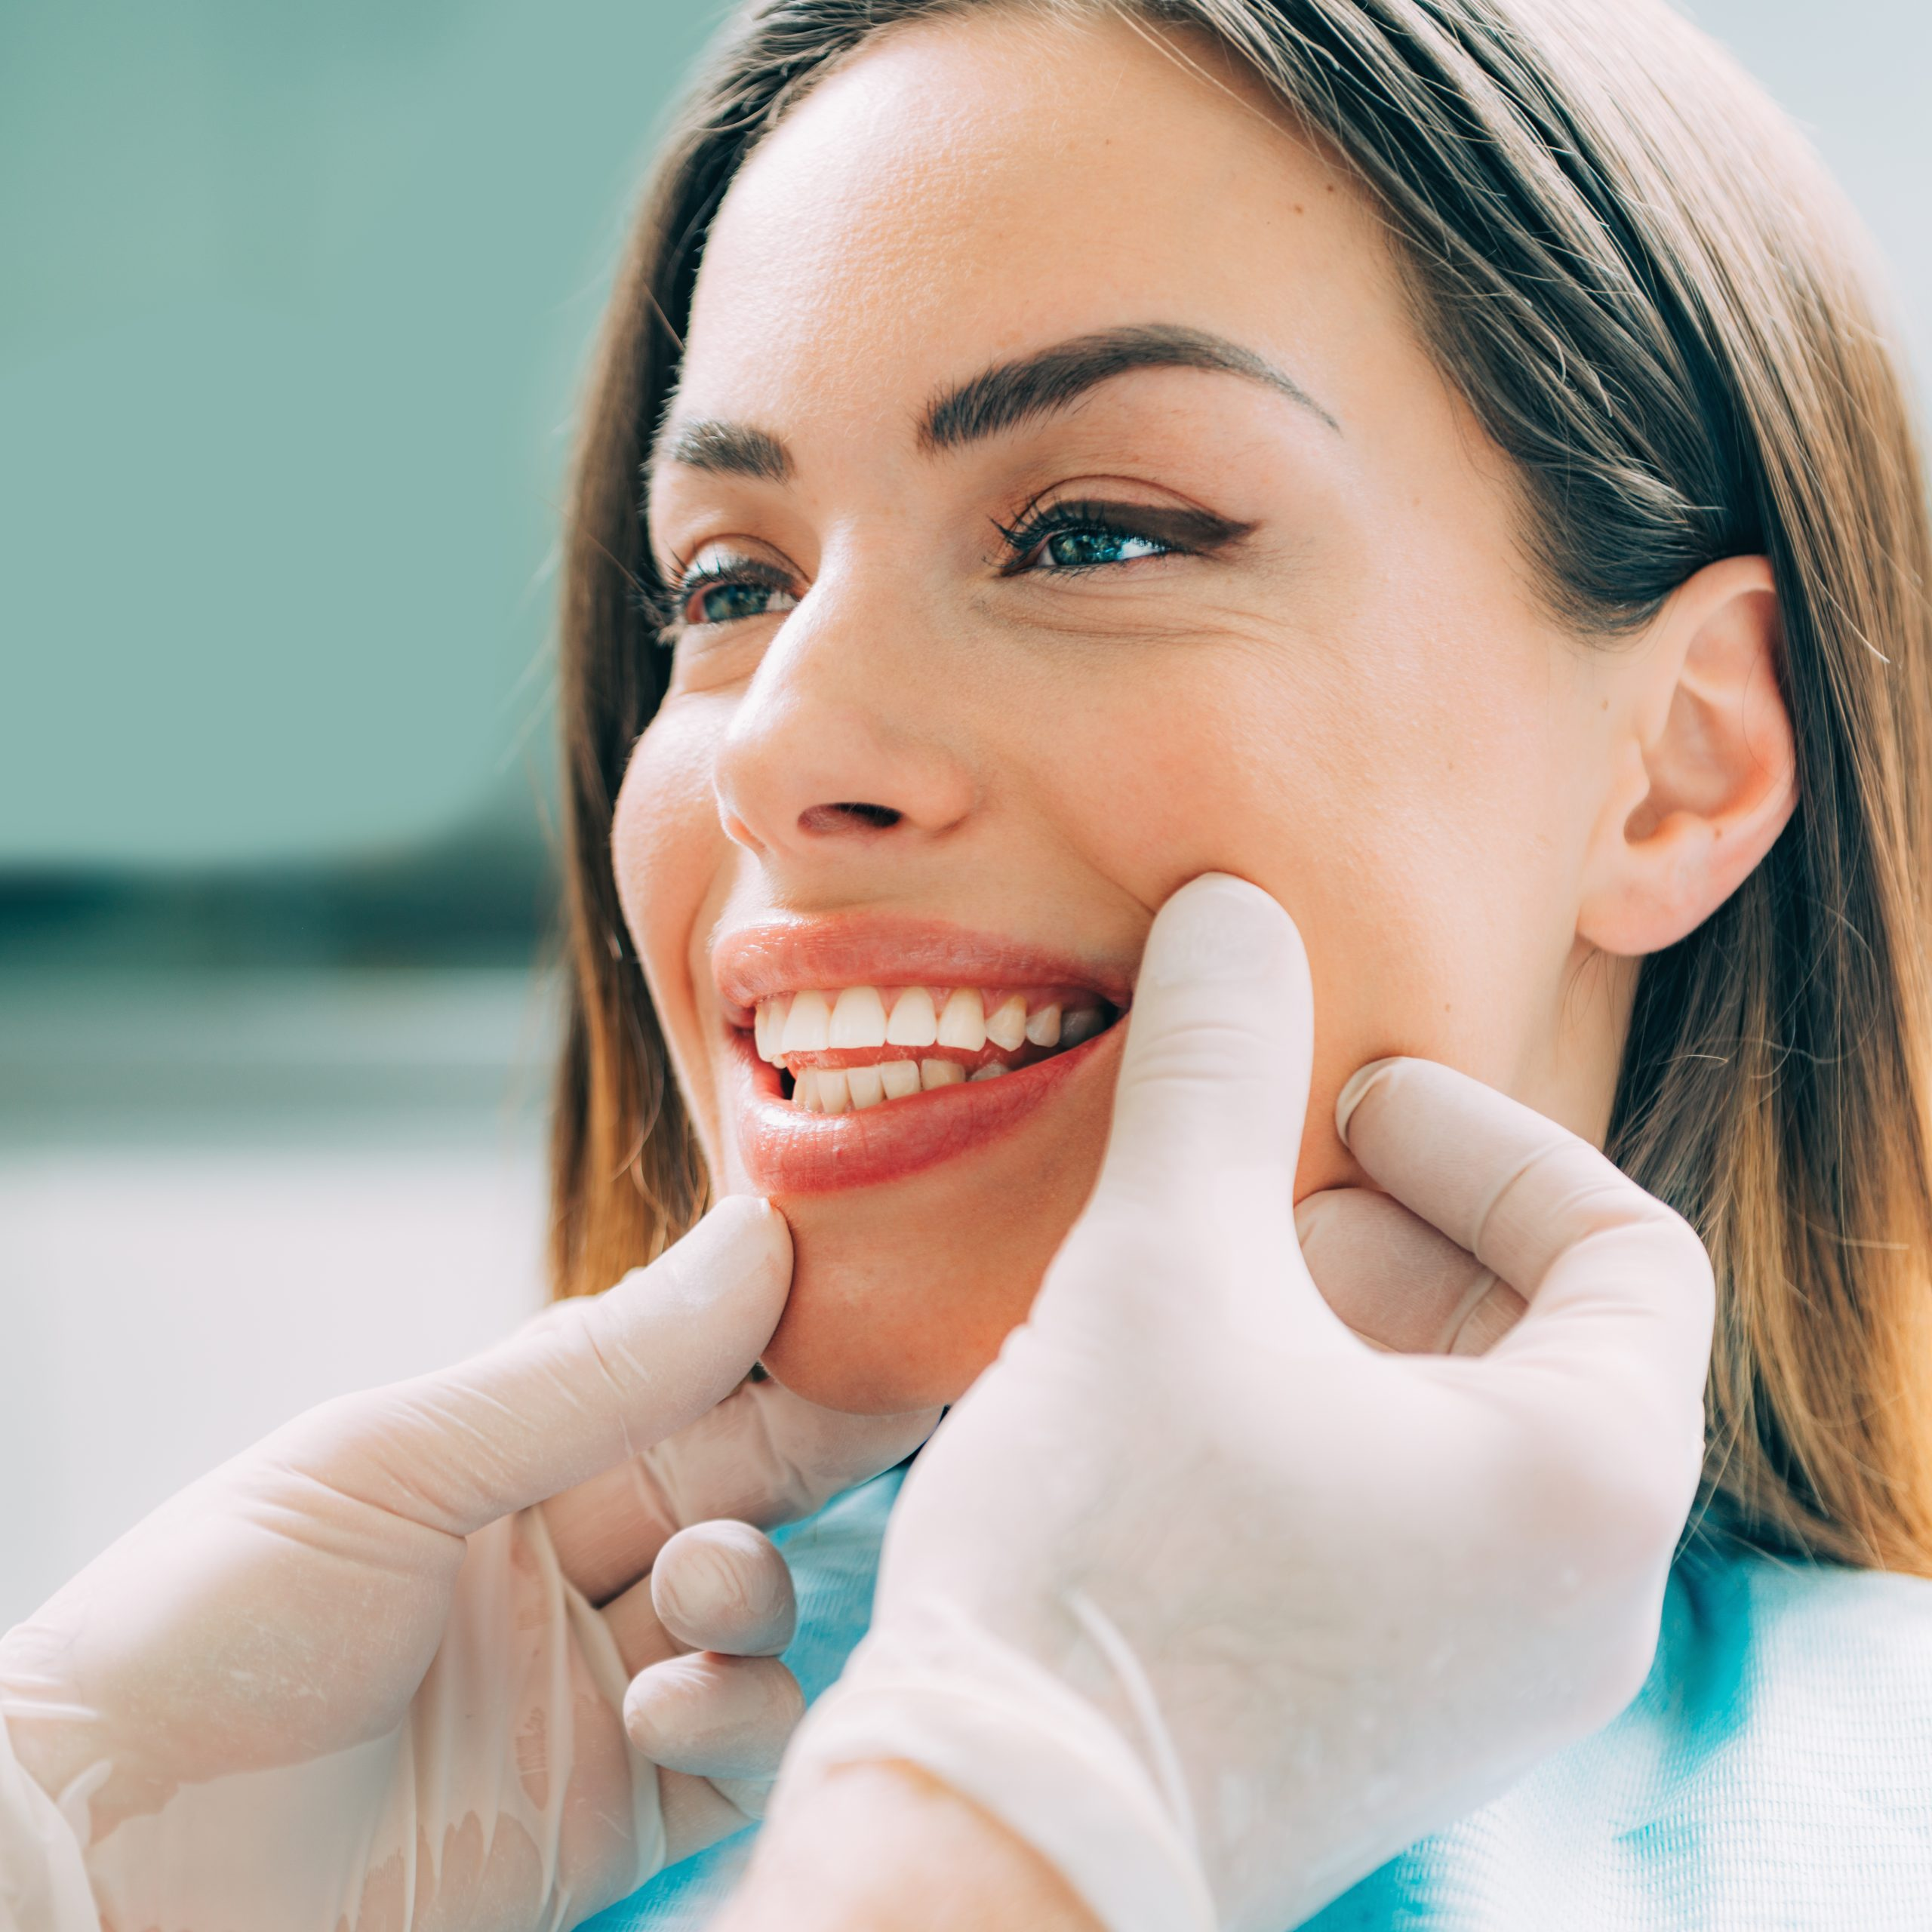 WHAT ARE THE BENEFITS OF COSMETICS DENTISTRY